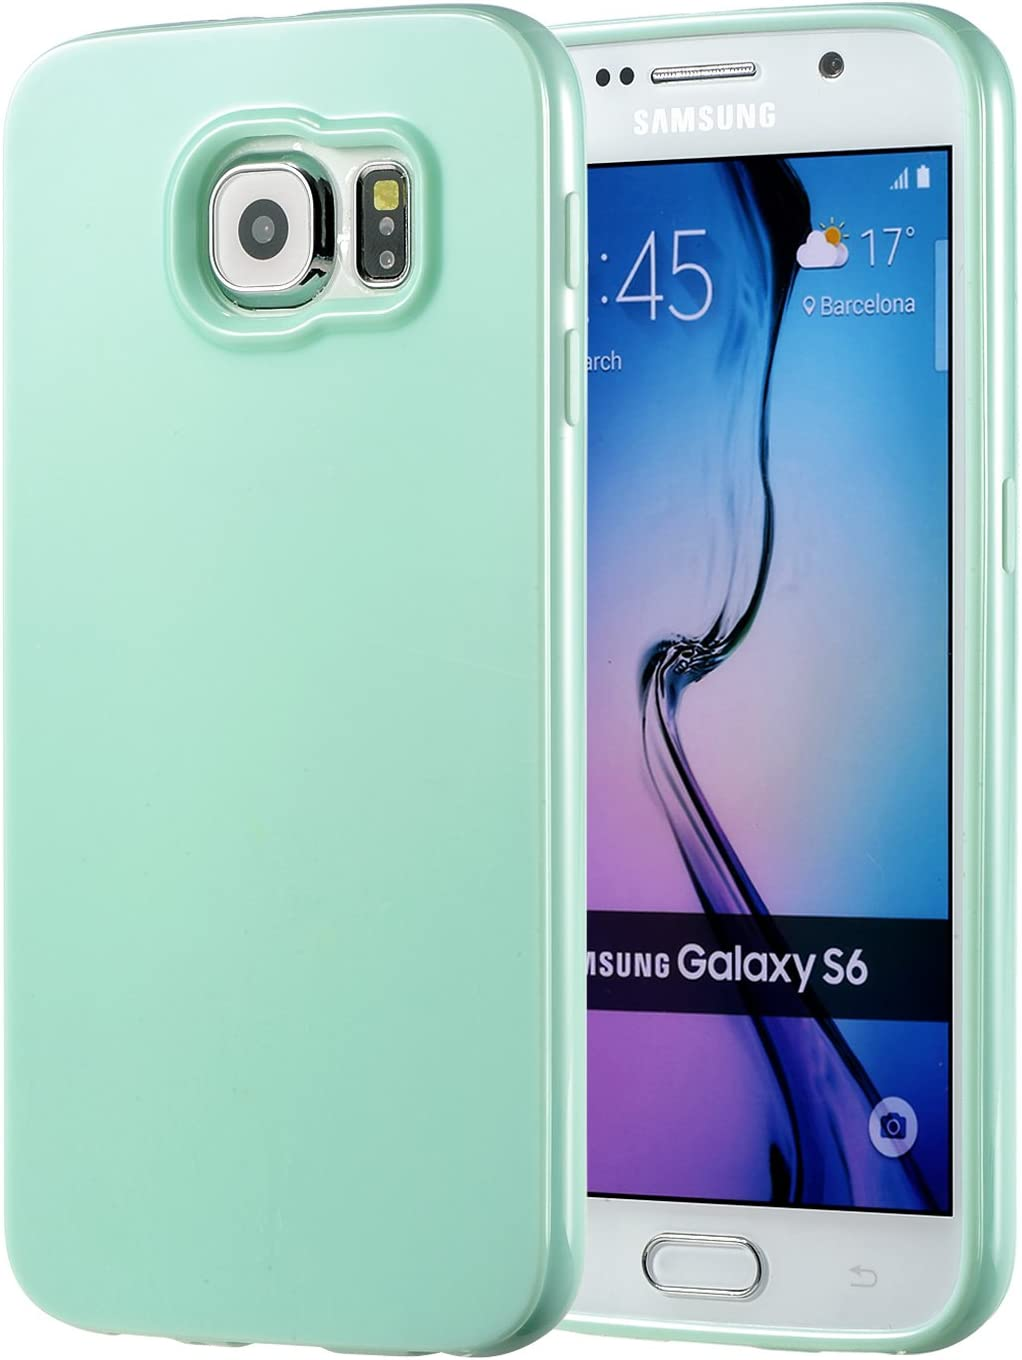 technext020 Galaxy S6 Mint Case, Galaxy S6 Case Silicone Protective Back Cover Slim Fit Samsung Galaxy S6 Bumper